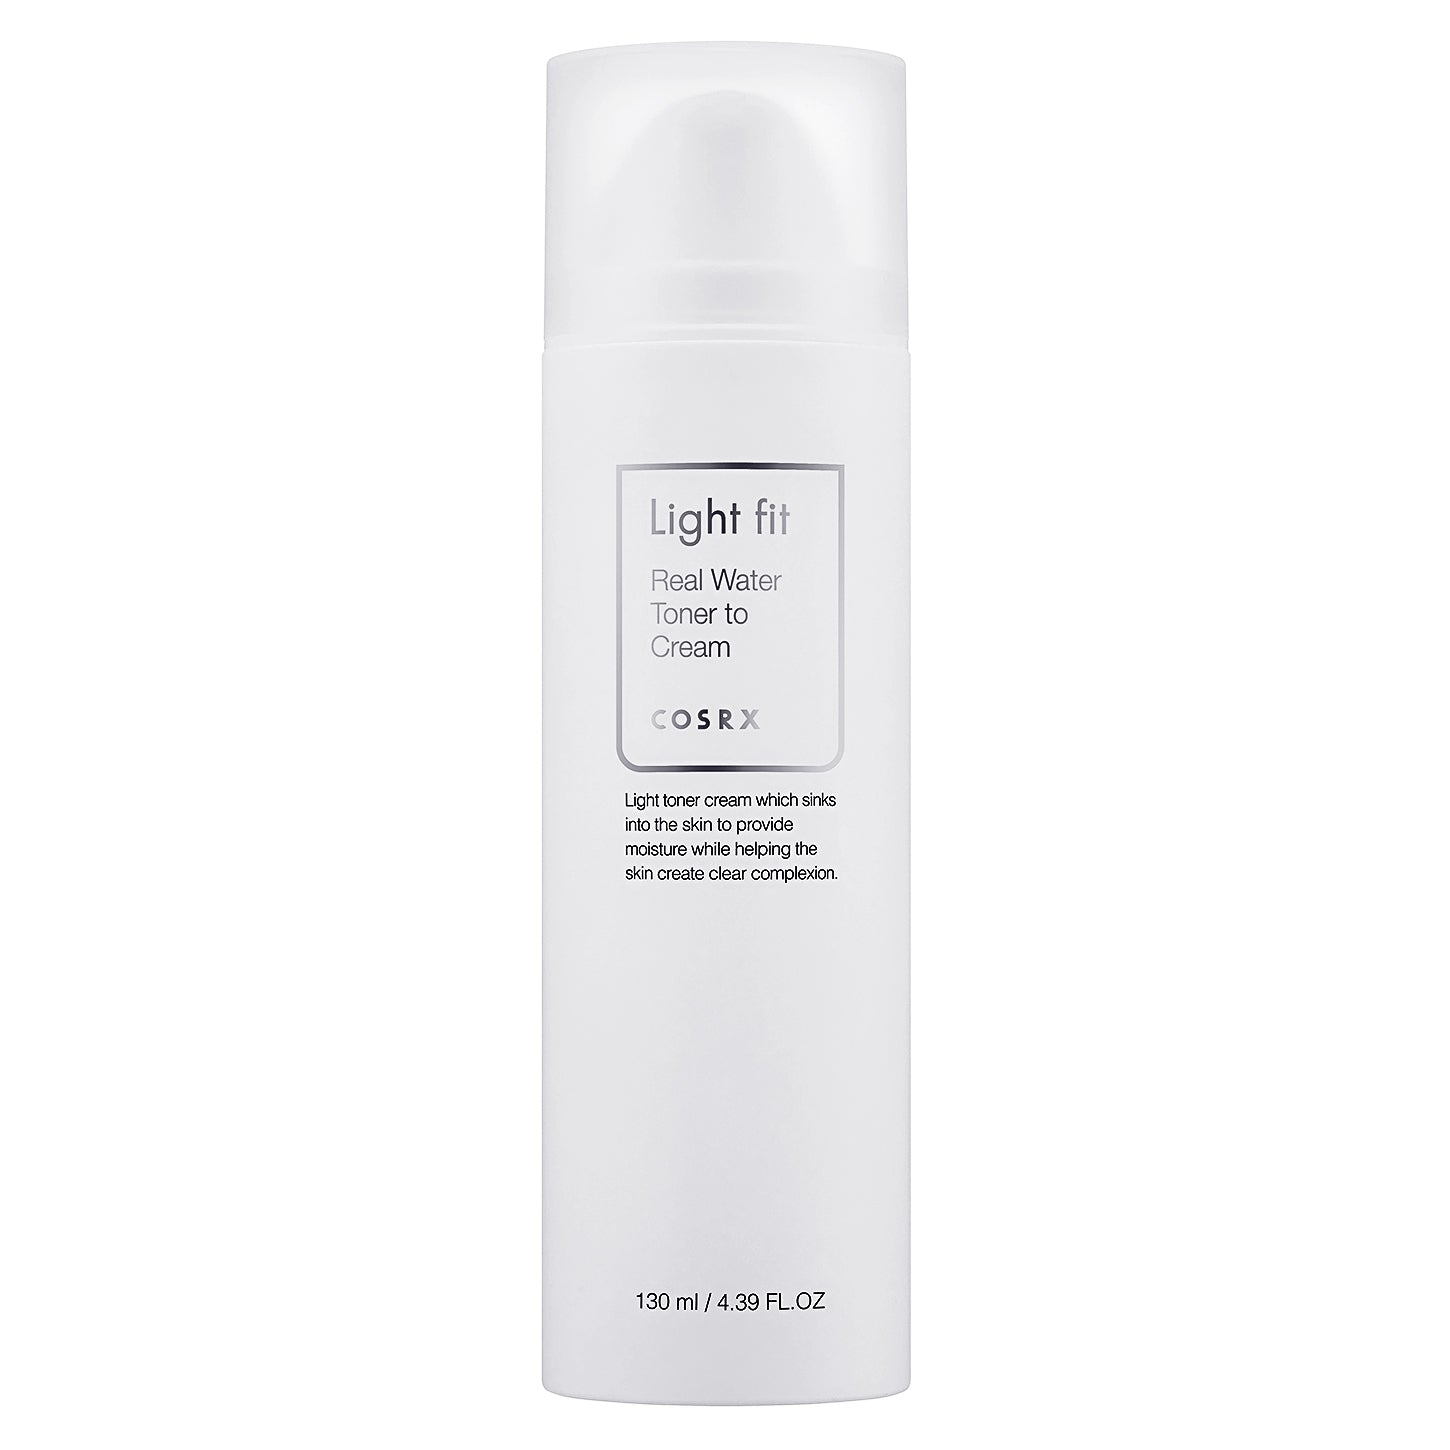 "Tónico o Crema Ligera - Light Fit Real Water Toner to Cream ""Por encargo"""